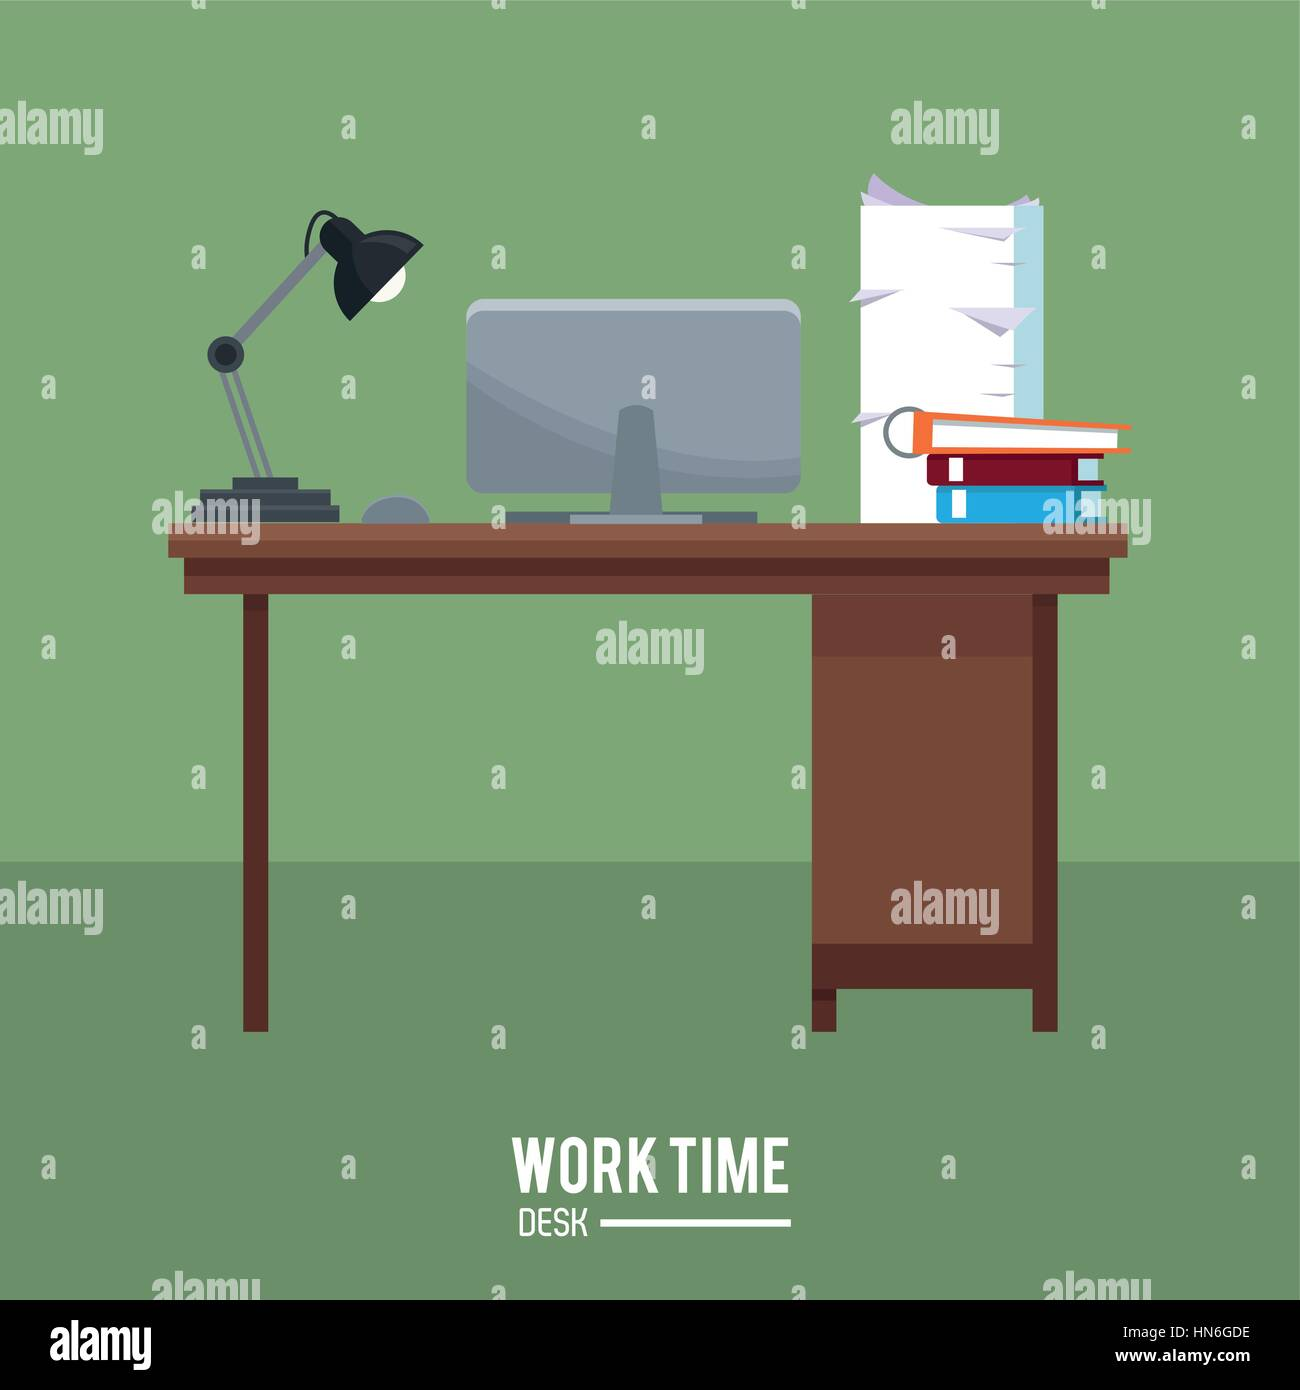 work time desk laptop lamp stack documents green background Stock Vector